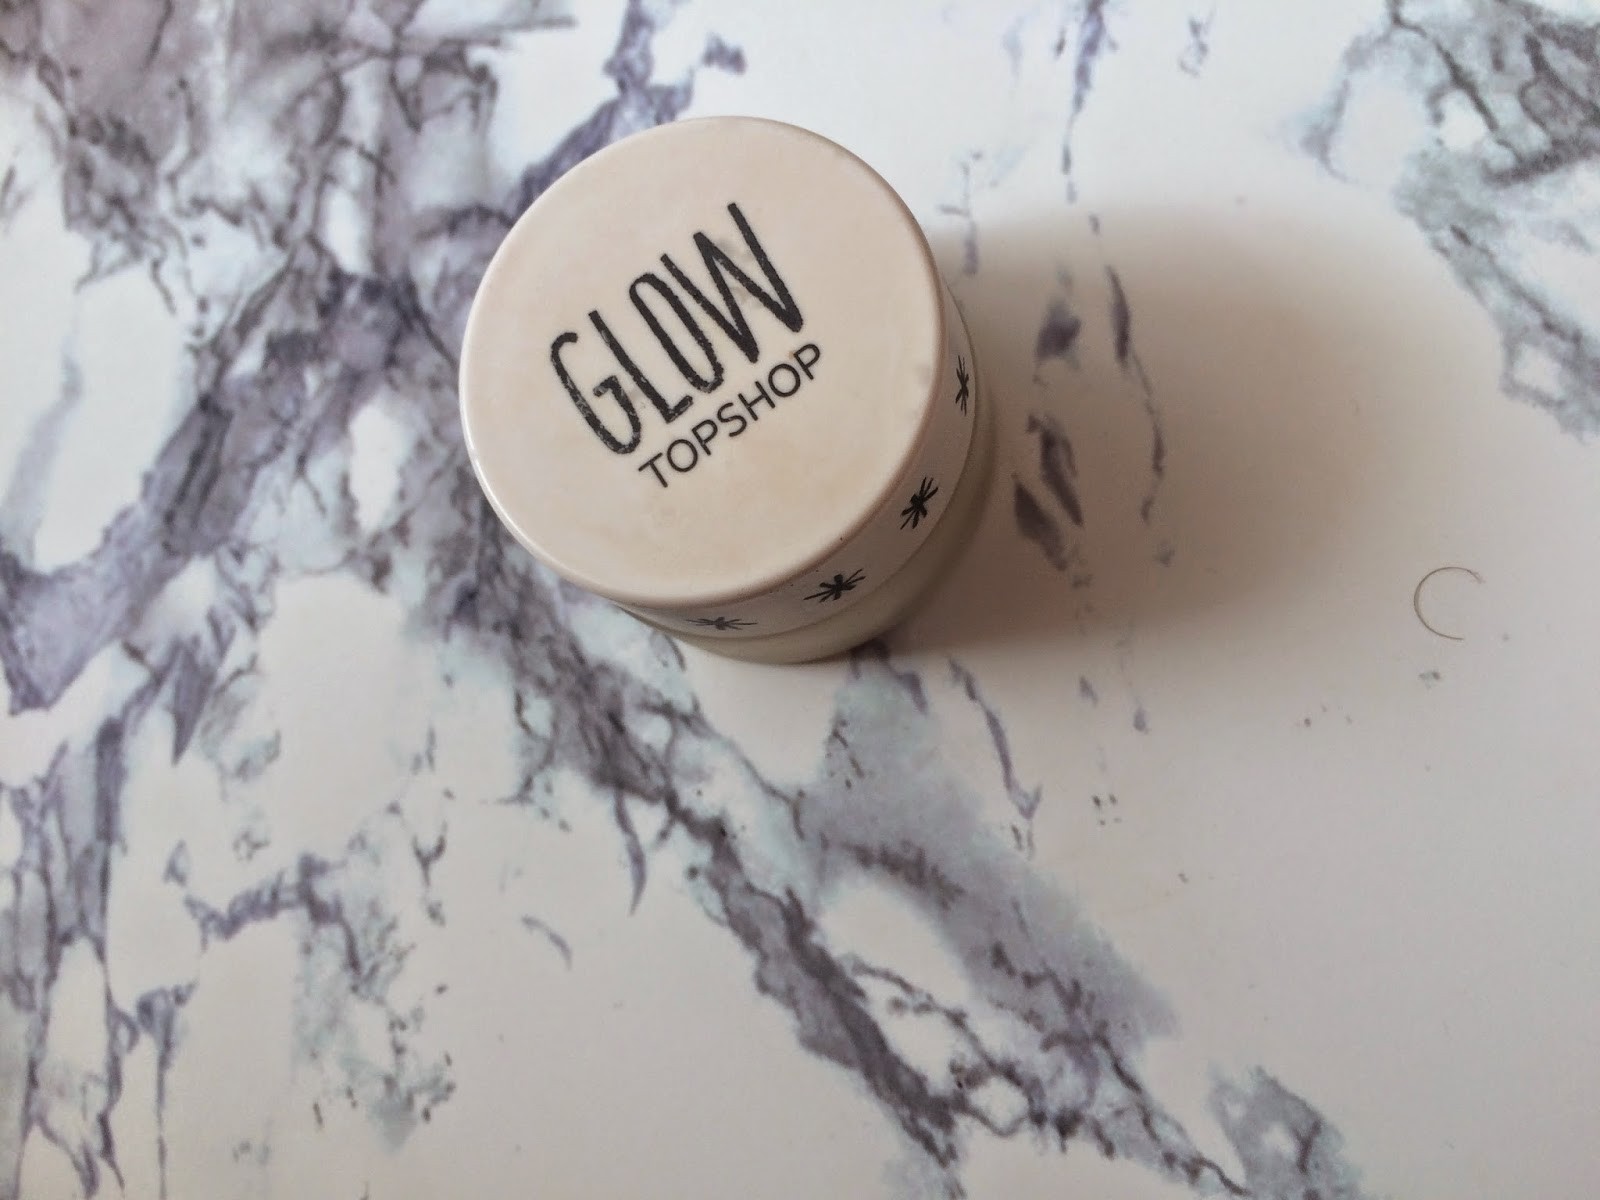 Review: Topshop Glow highlighter